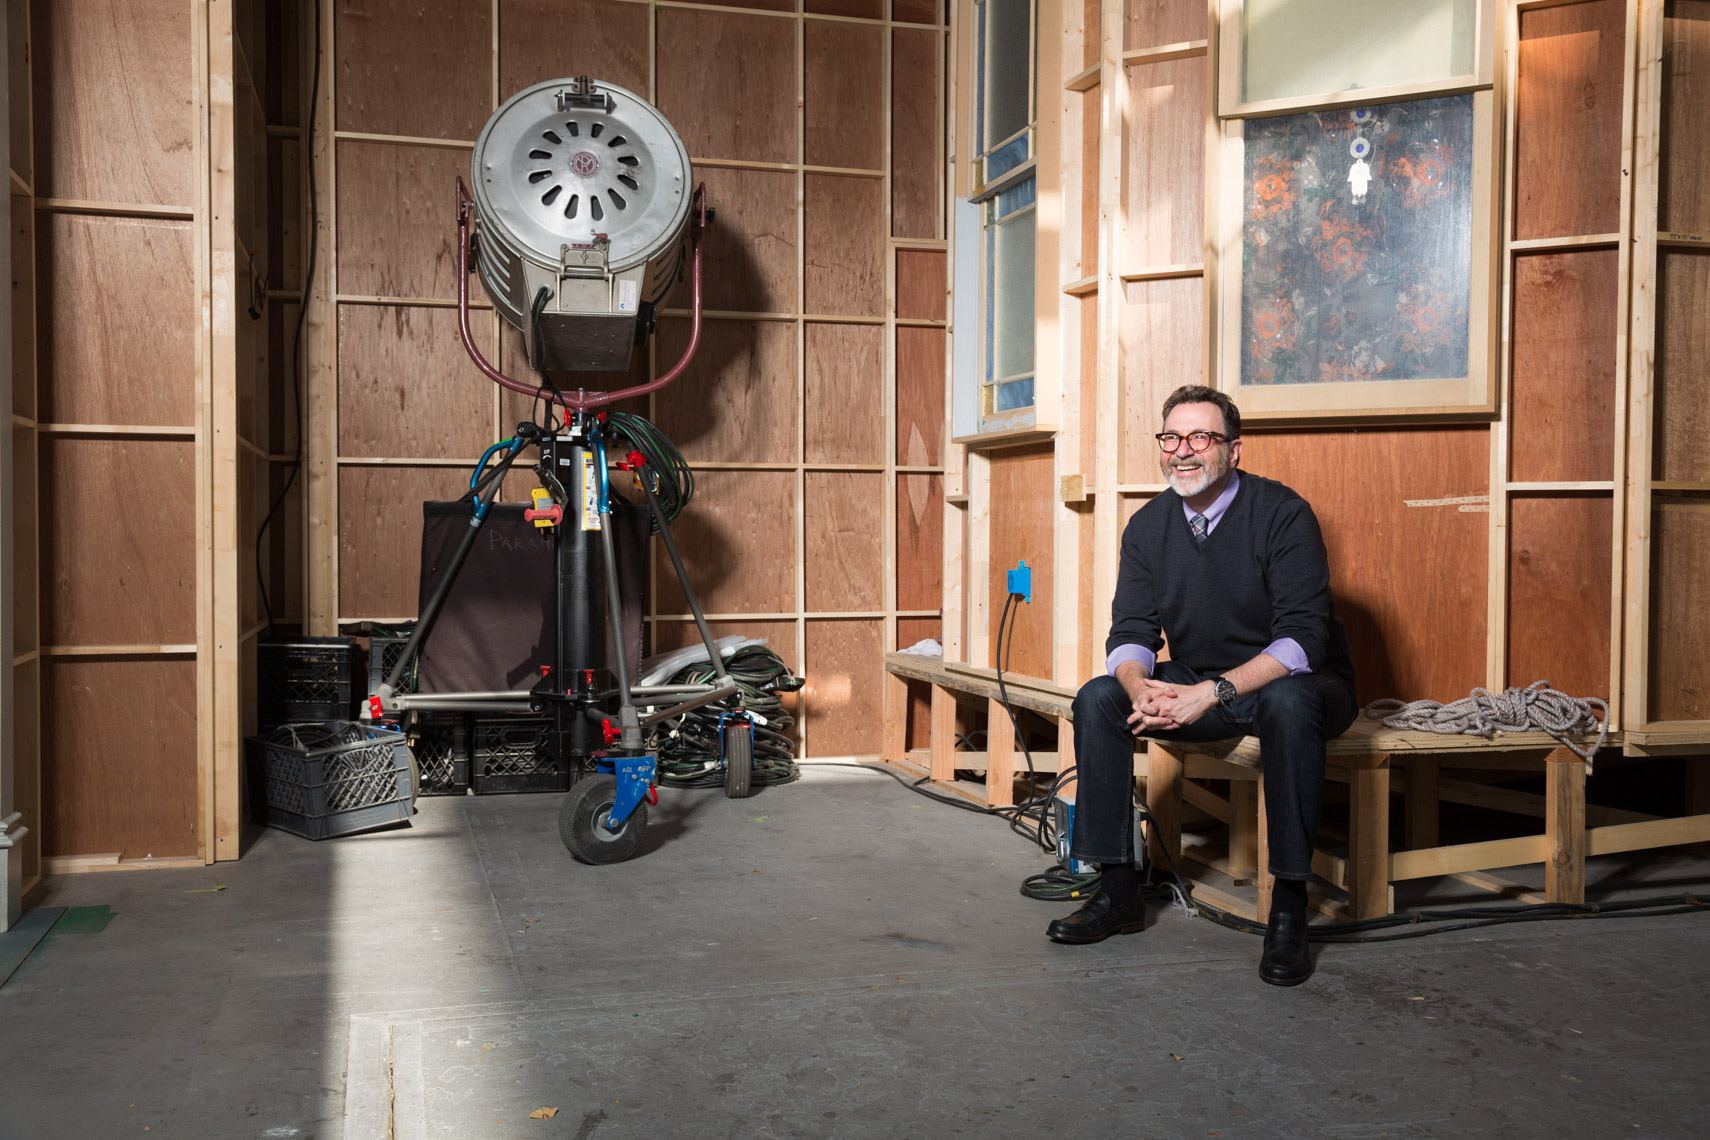 Lee Rosenthal, President of Physical Production for Paramount, on the studio